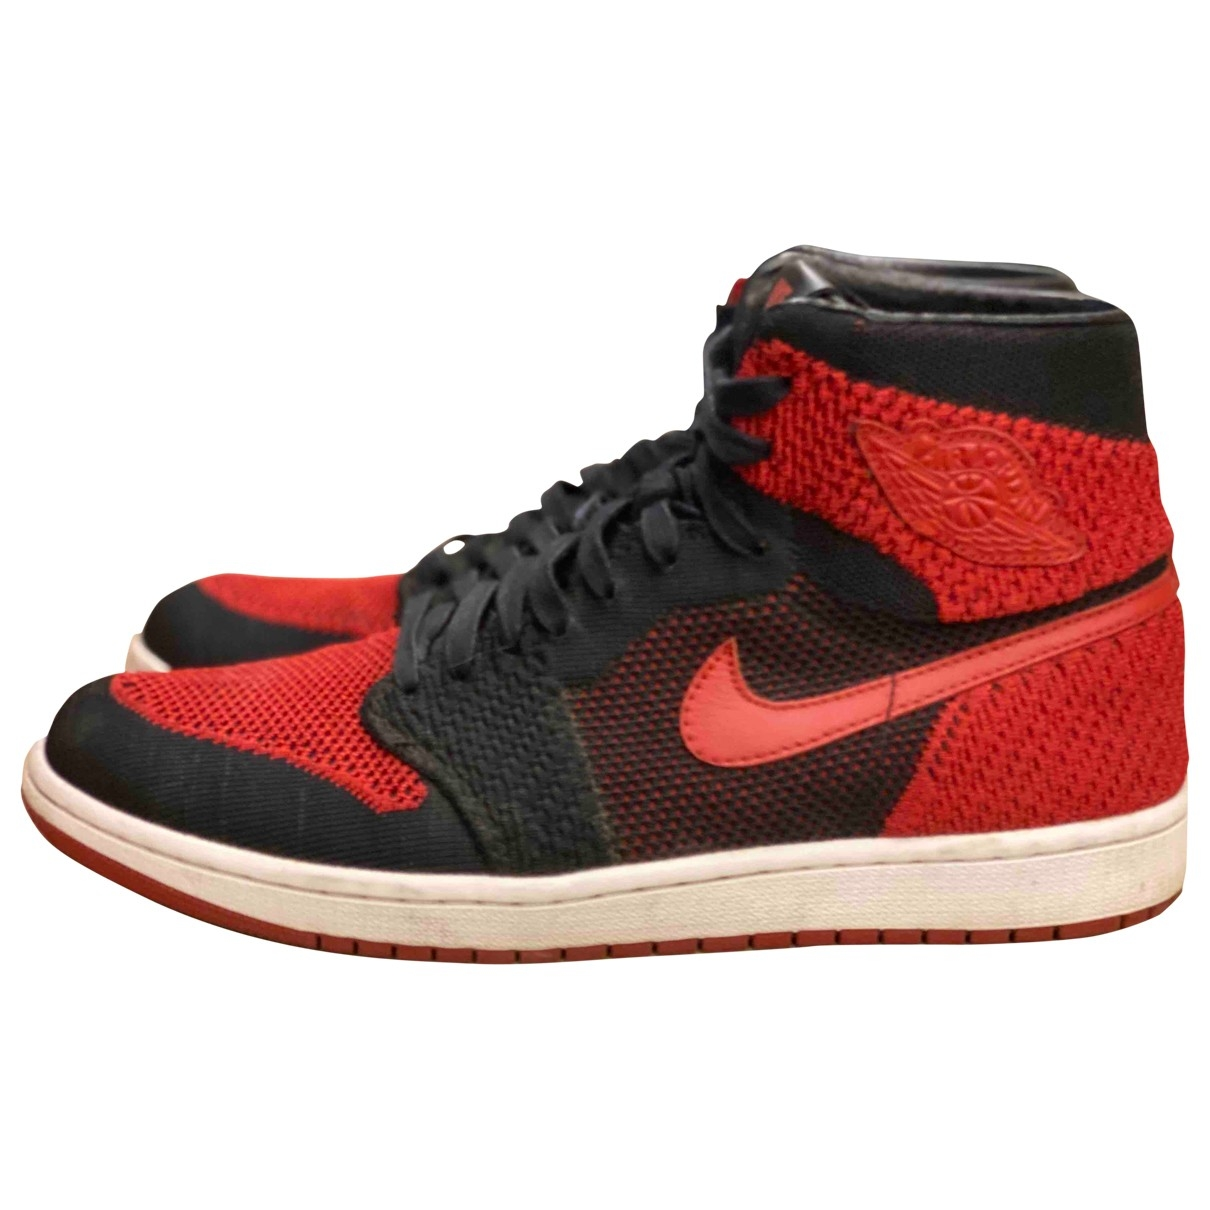 Jordan - Baskets Air Jordan 1  pour homme - rouge